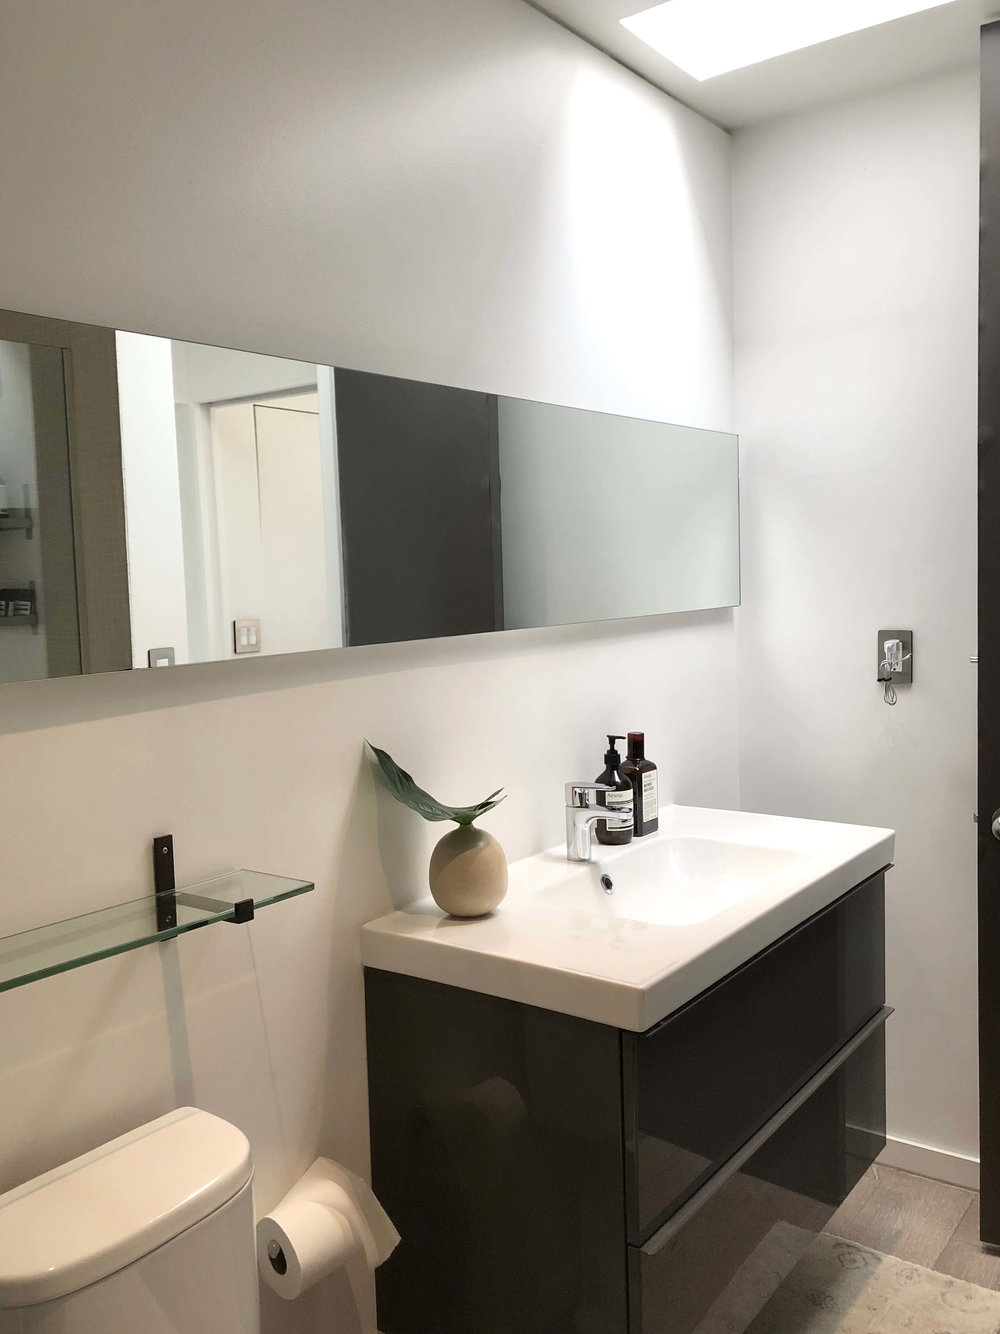 Horizontal mirror over vanity and toilet -  Dwell on Design Home Tours